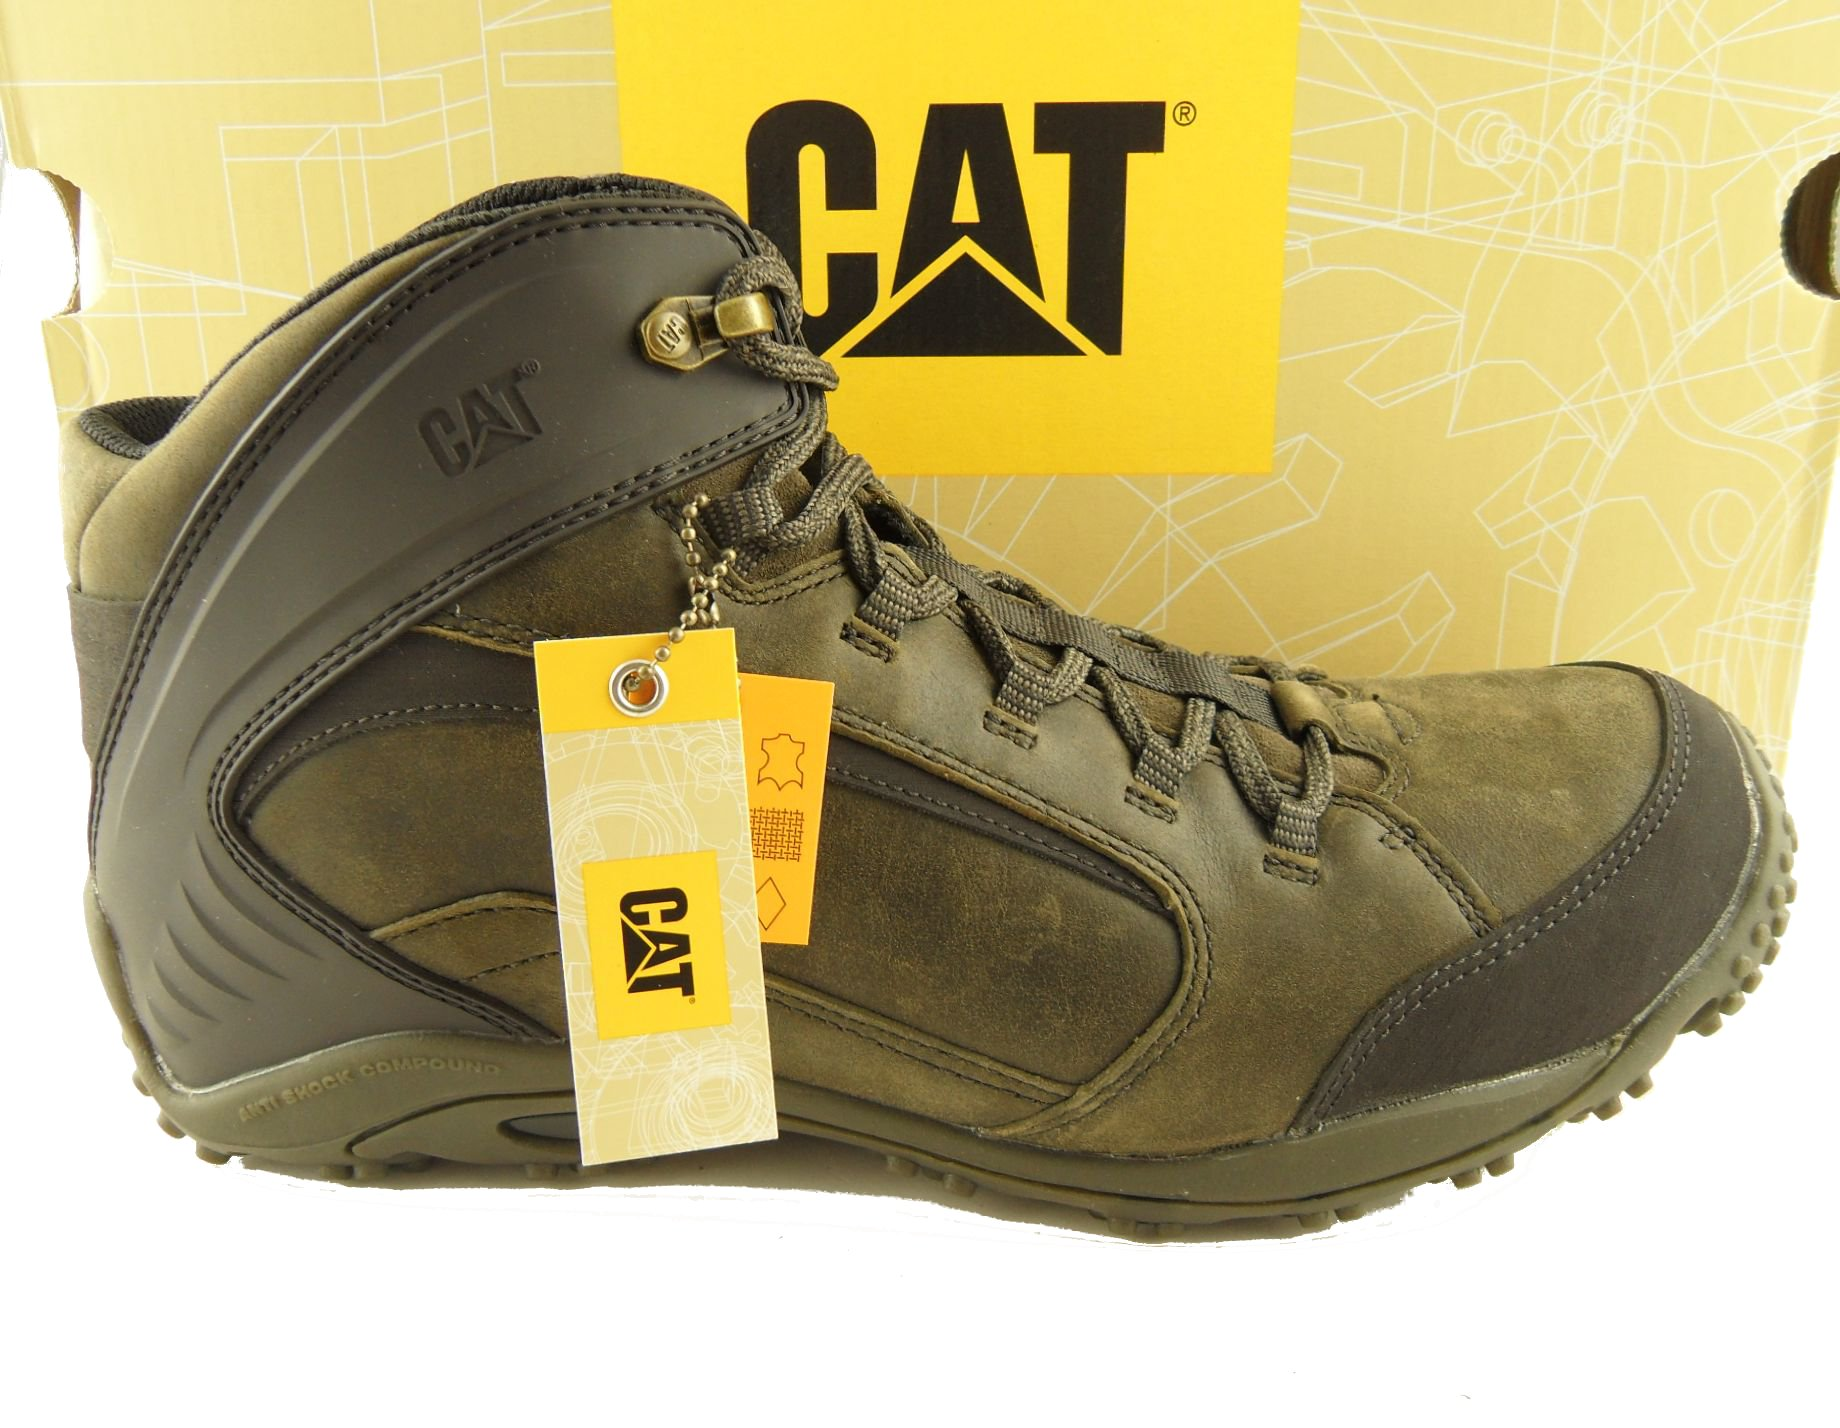 Cat Boots For Men